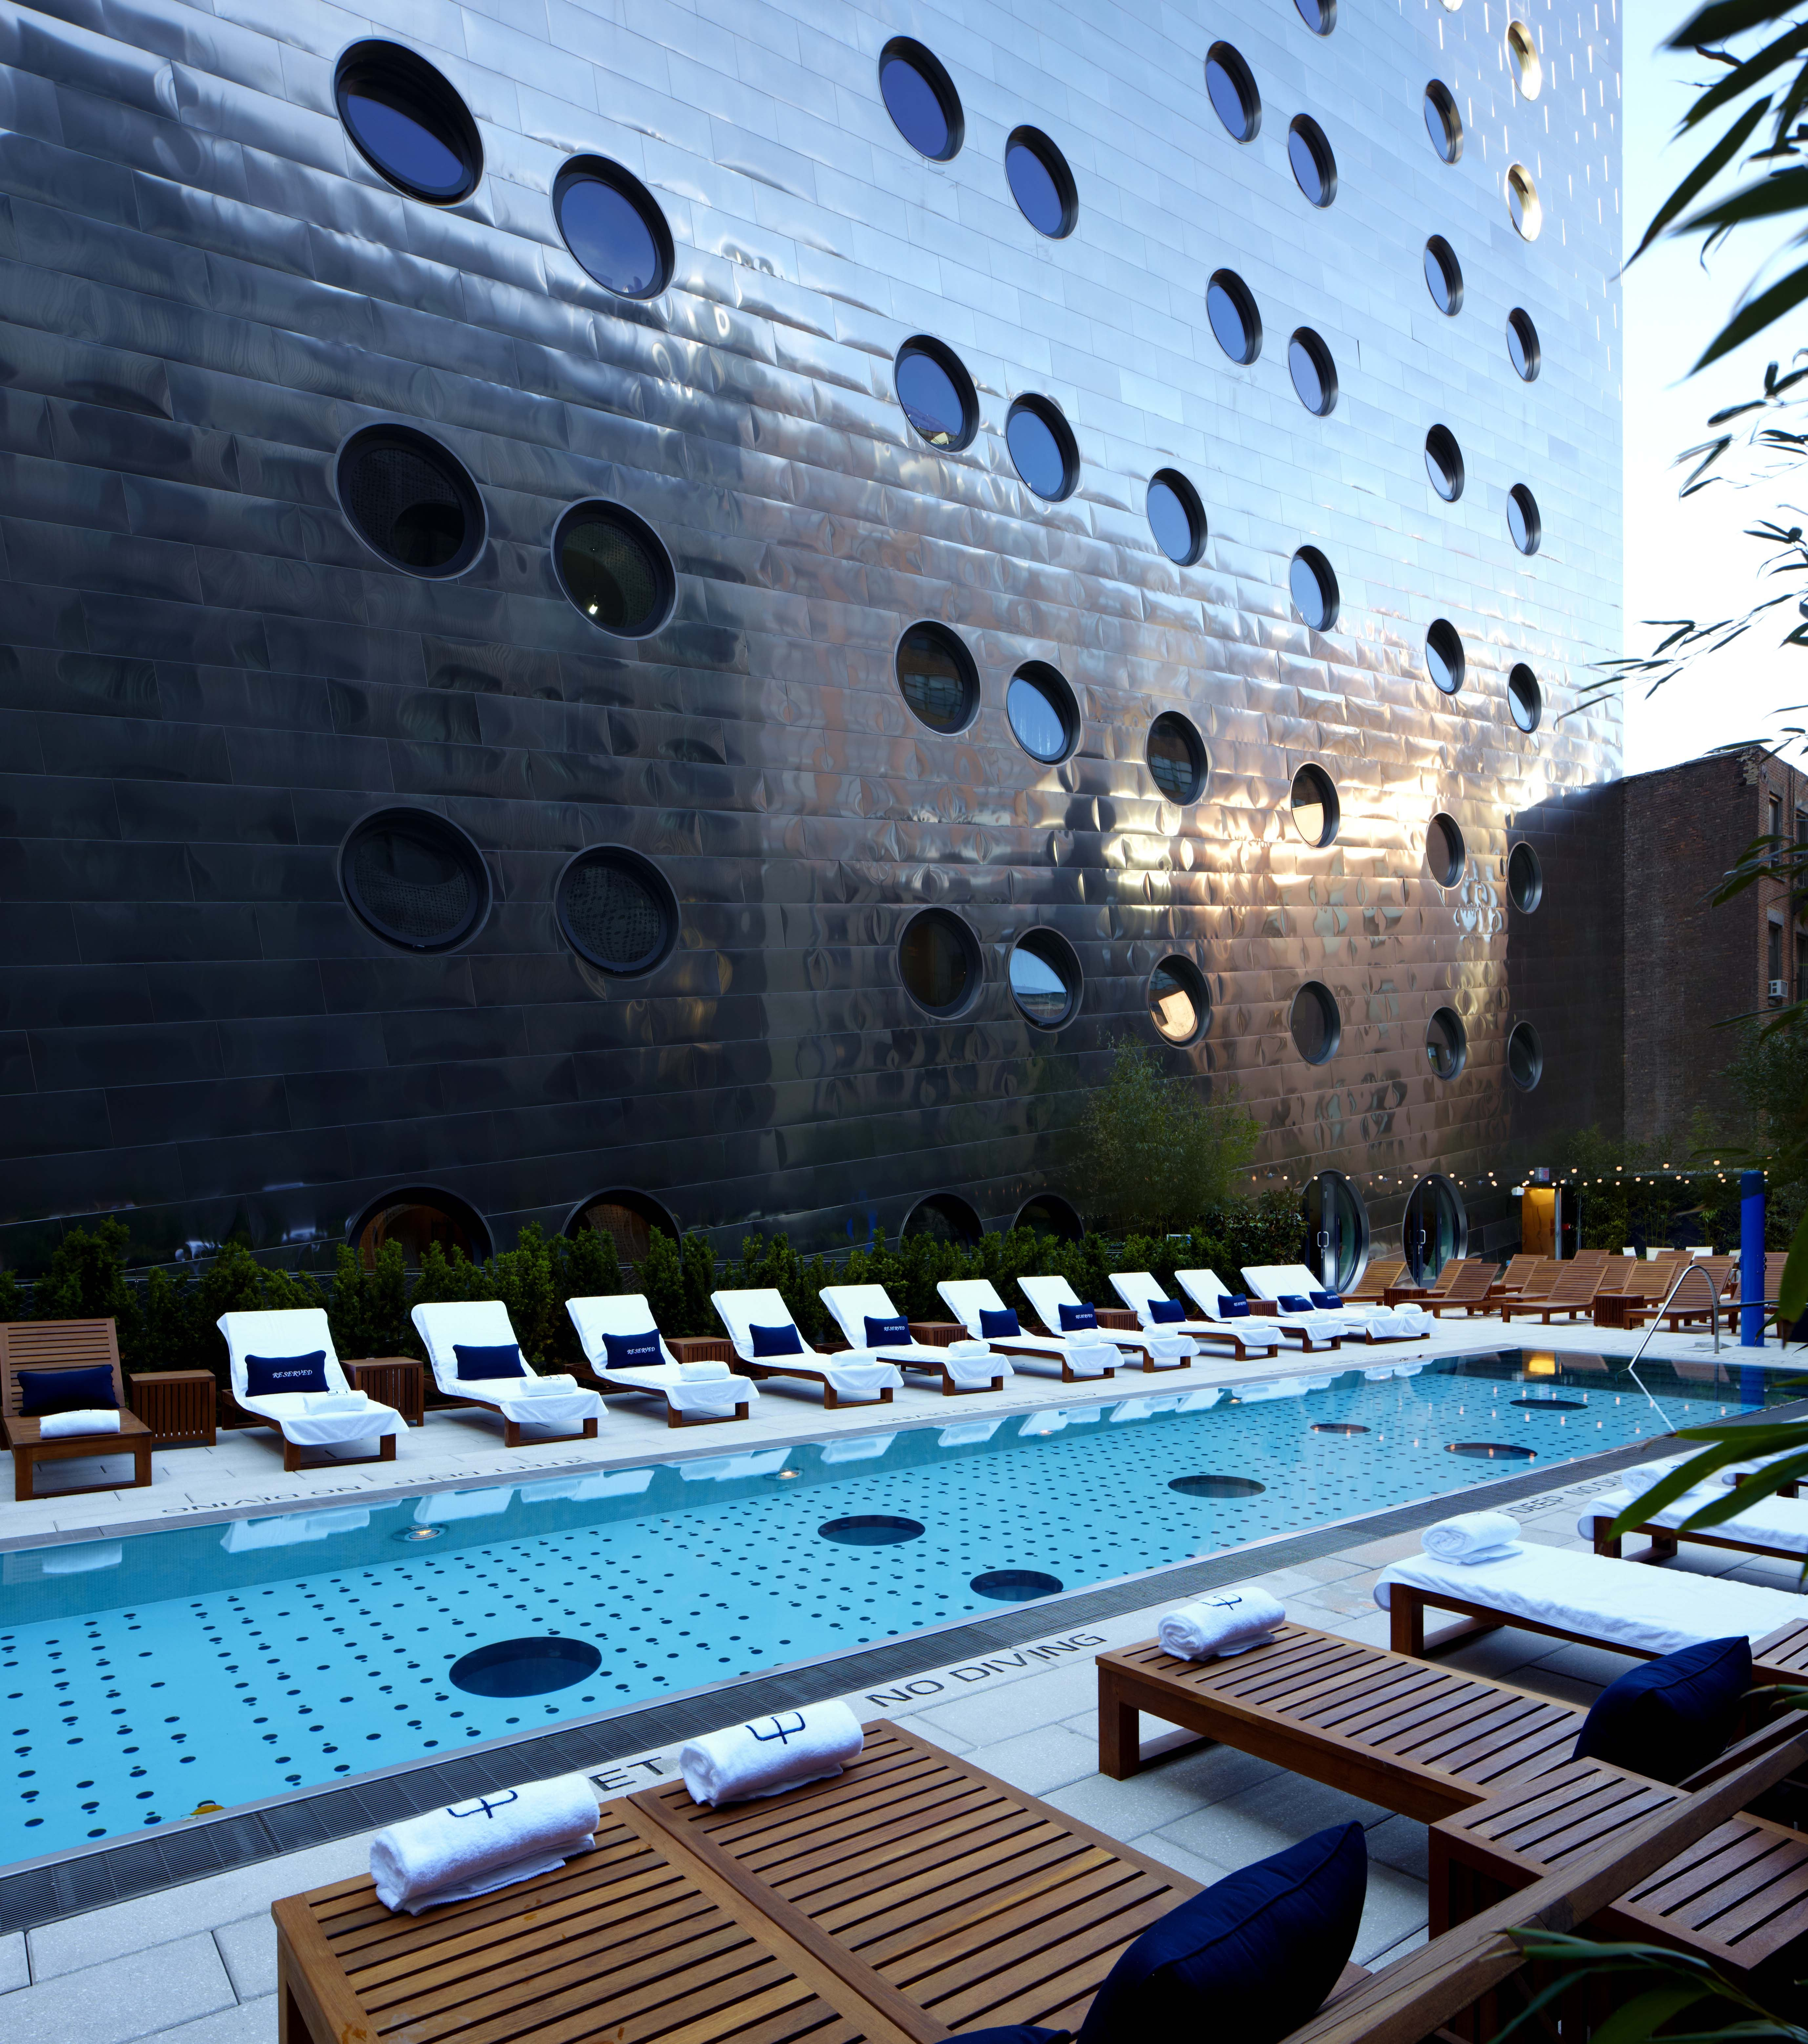 Editors Picks Dream Pooream Downtown Nycdowntown Hotelssandsnew